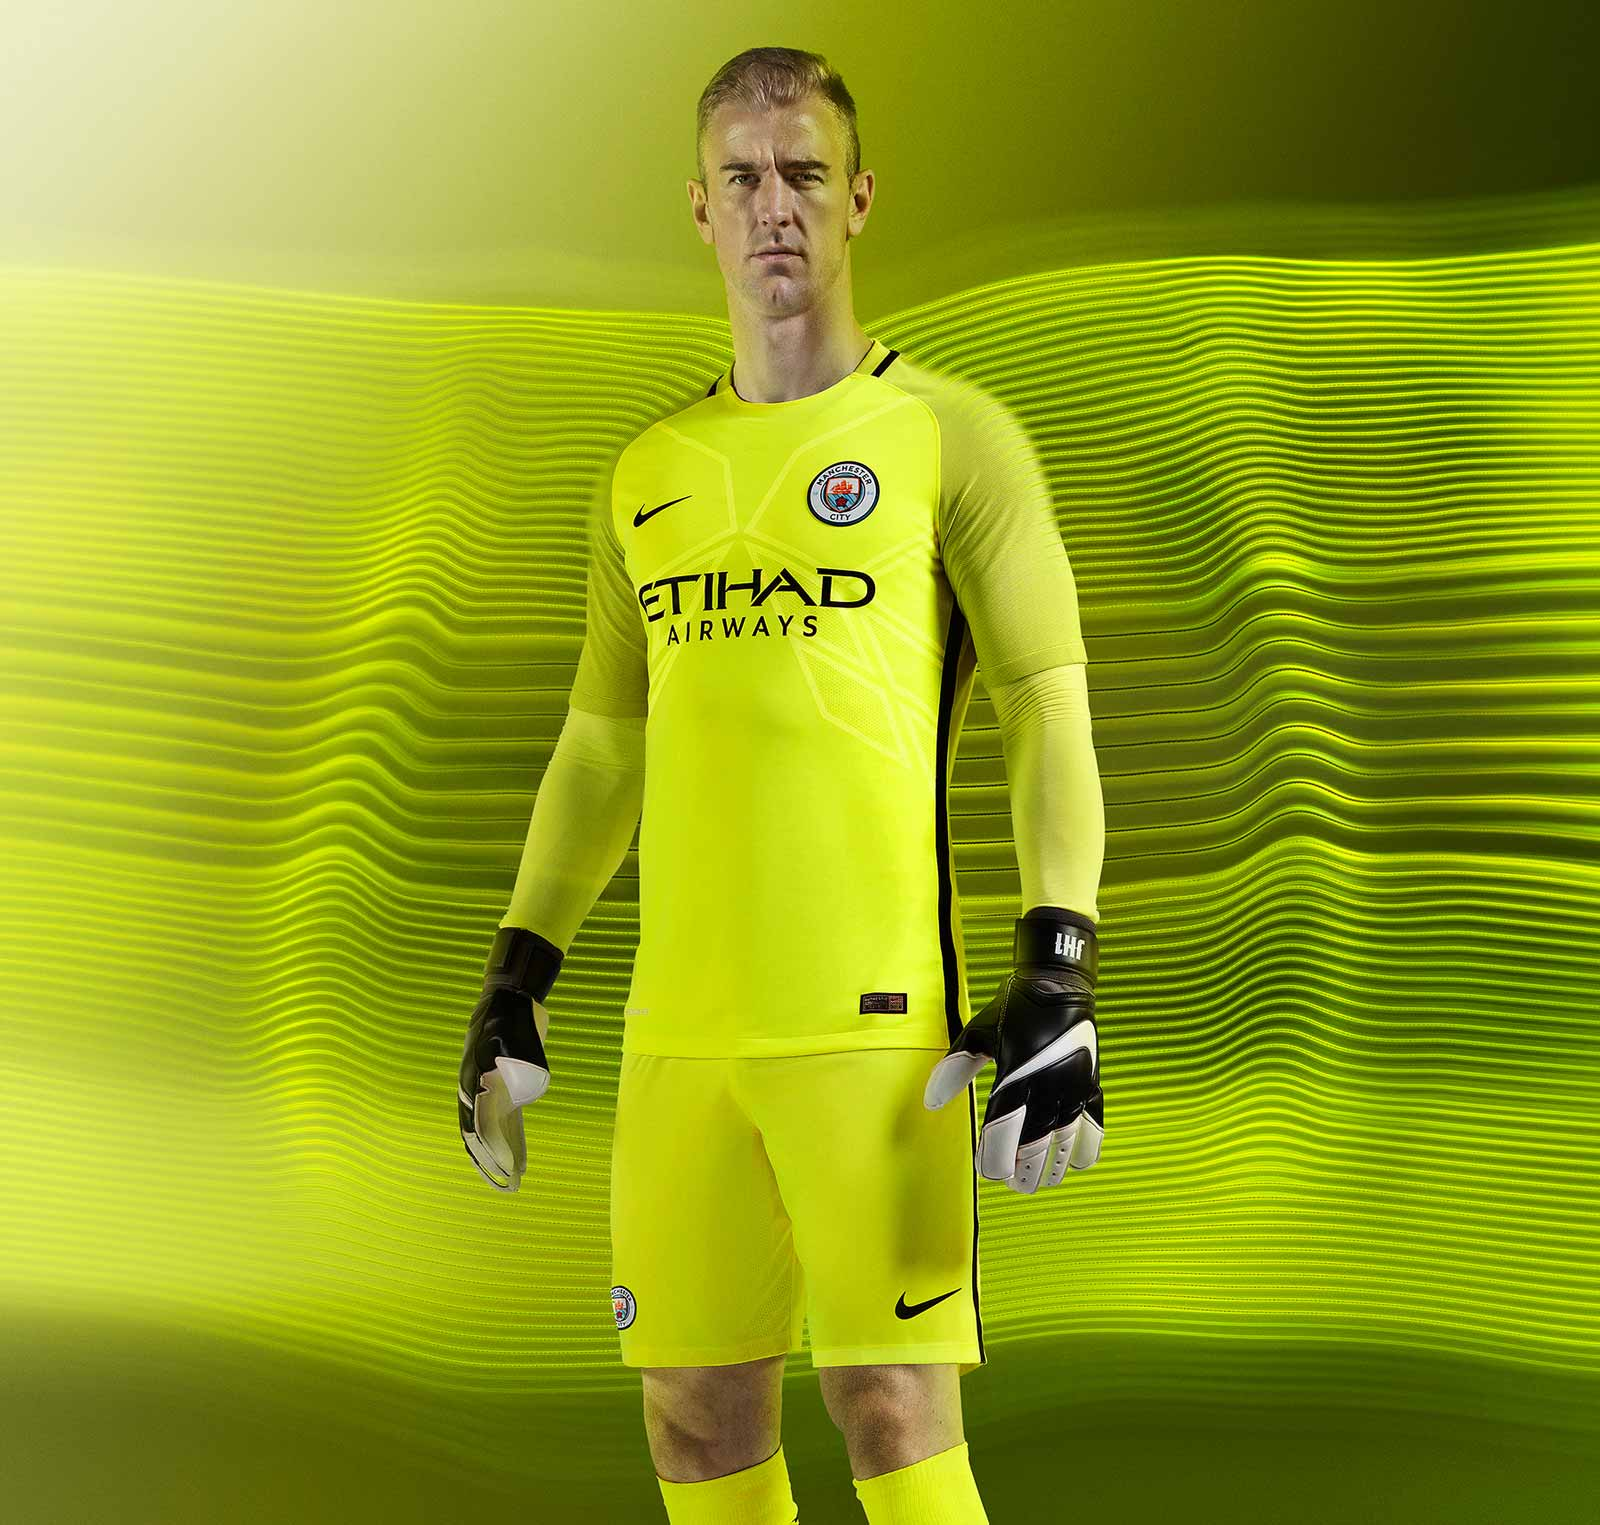 manchester city 16 17 goalkeeper kit released footy headlines. Black Bedroom Furniture Sets. Home Design Ideas